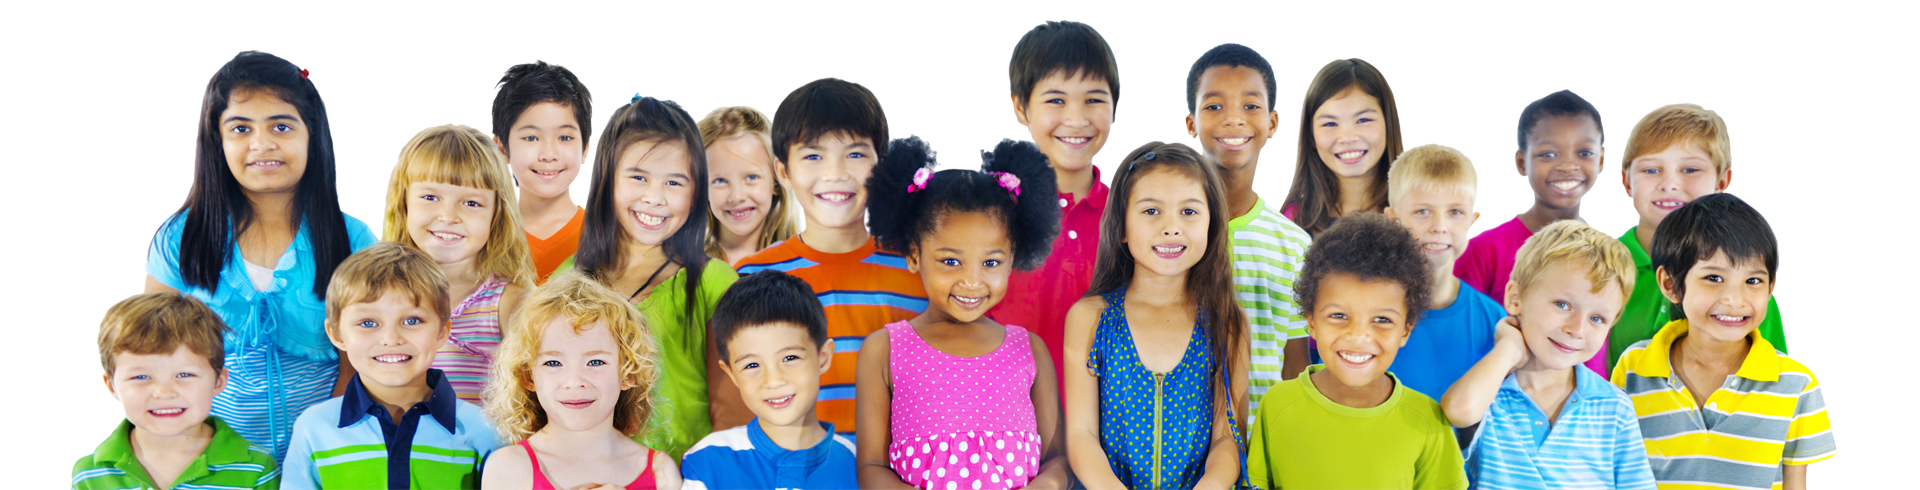 AllKids Orthodontic Consultation Exam in Illinois